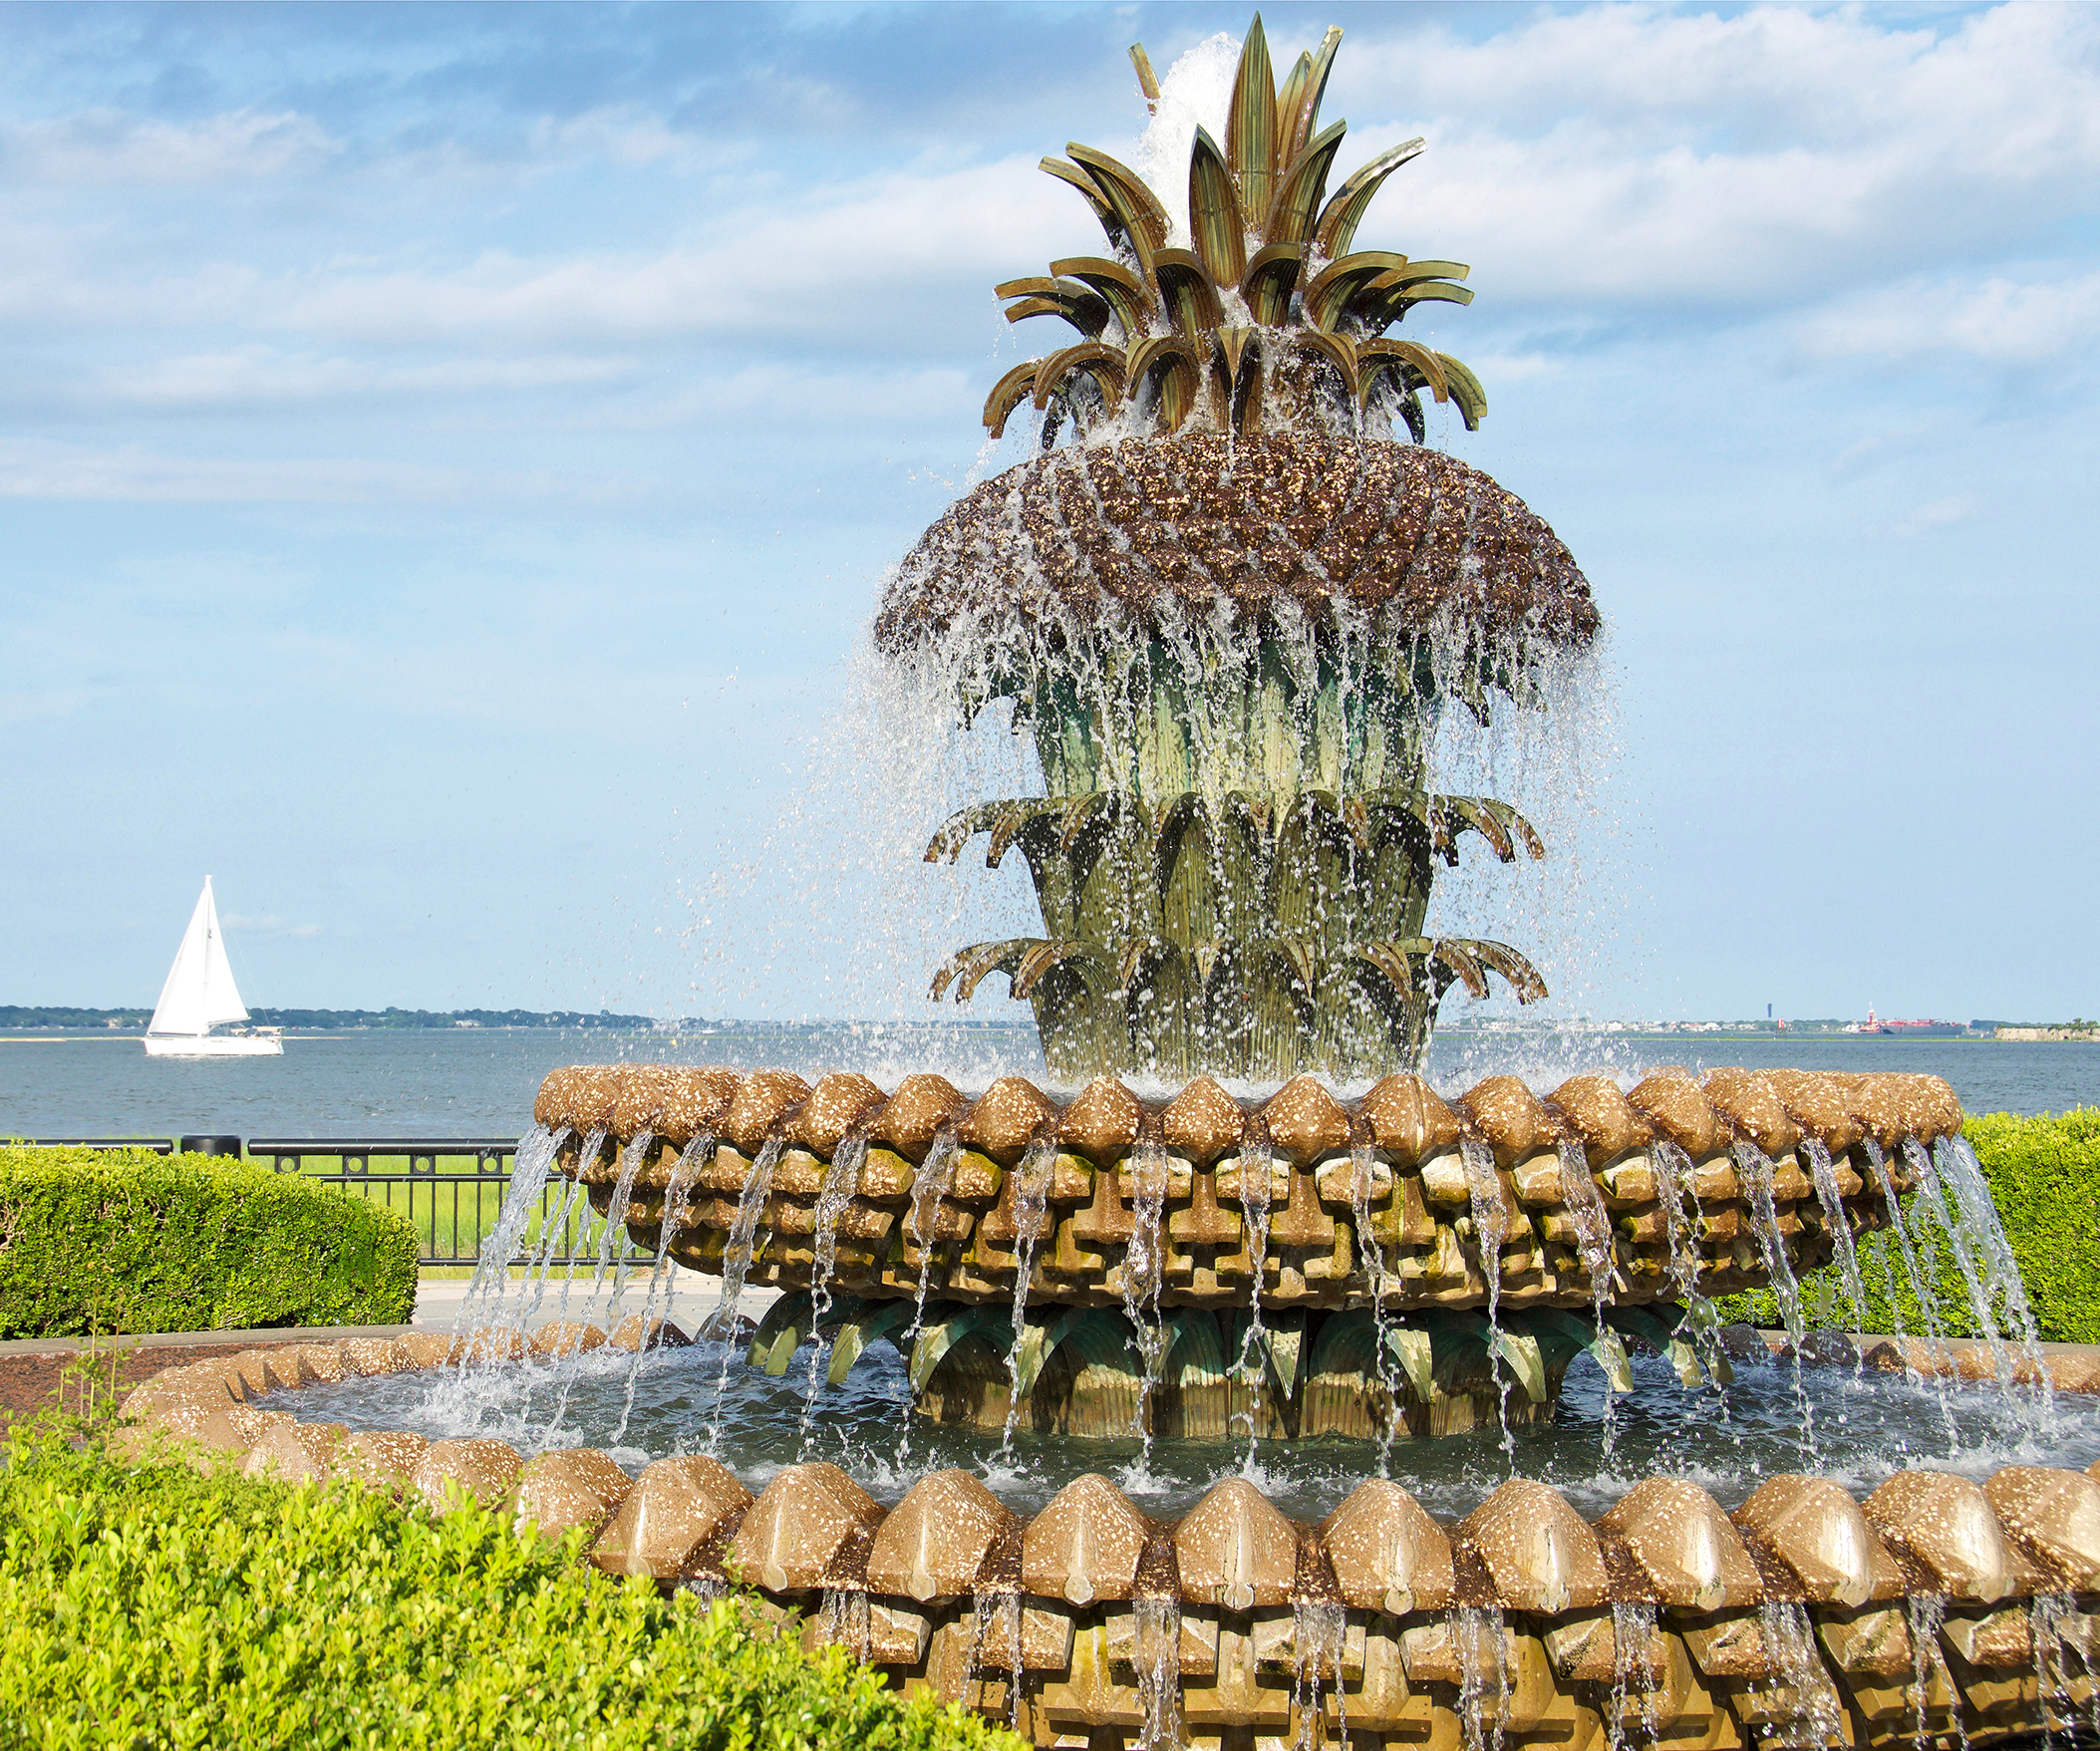 Historical Pineapple Fountain found in Charleston, South Carolina Waterfront Park